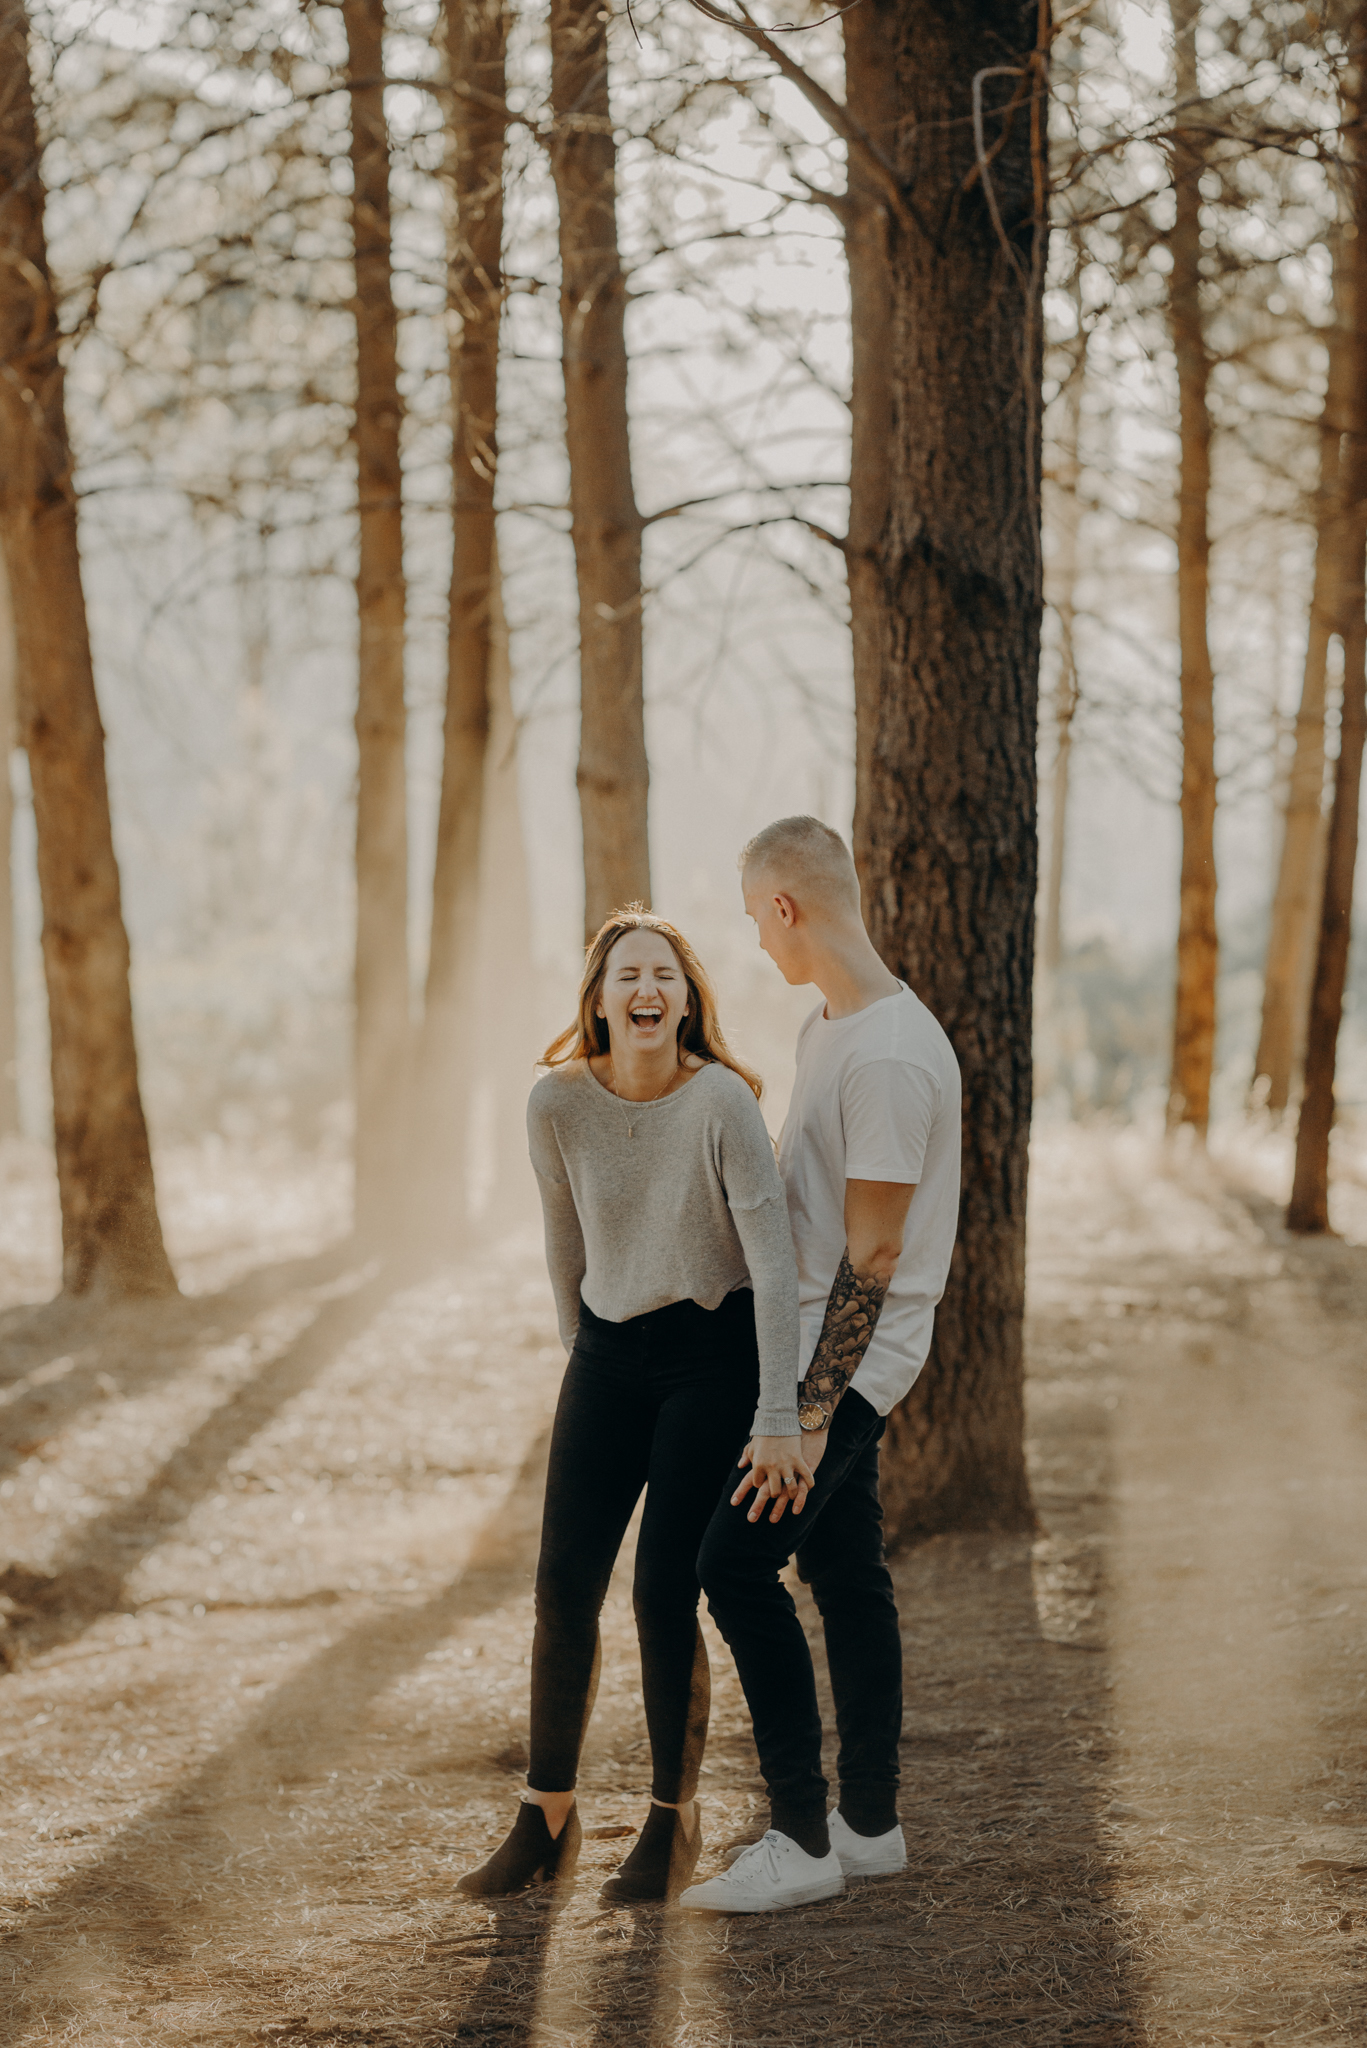 Isaiah + Taylor Photography - Los Angeles Forest Engagement, Laid-back Wedding Photographer-077.jpg